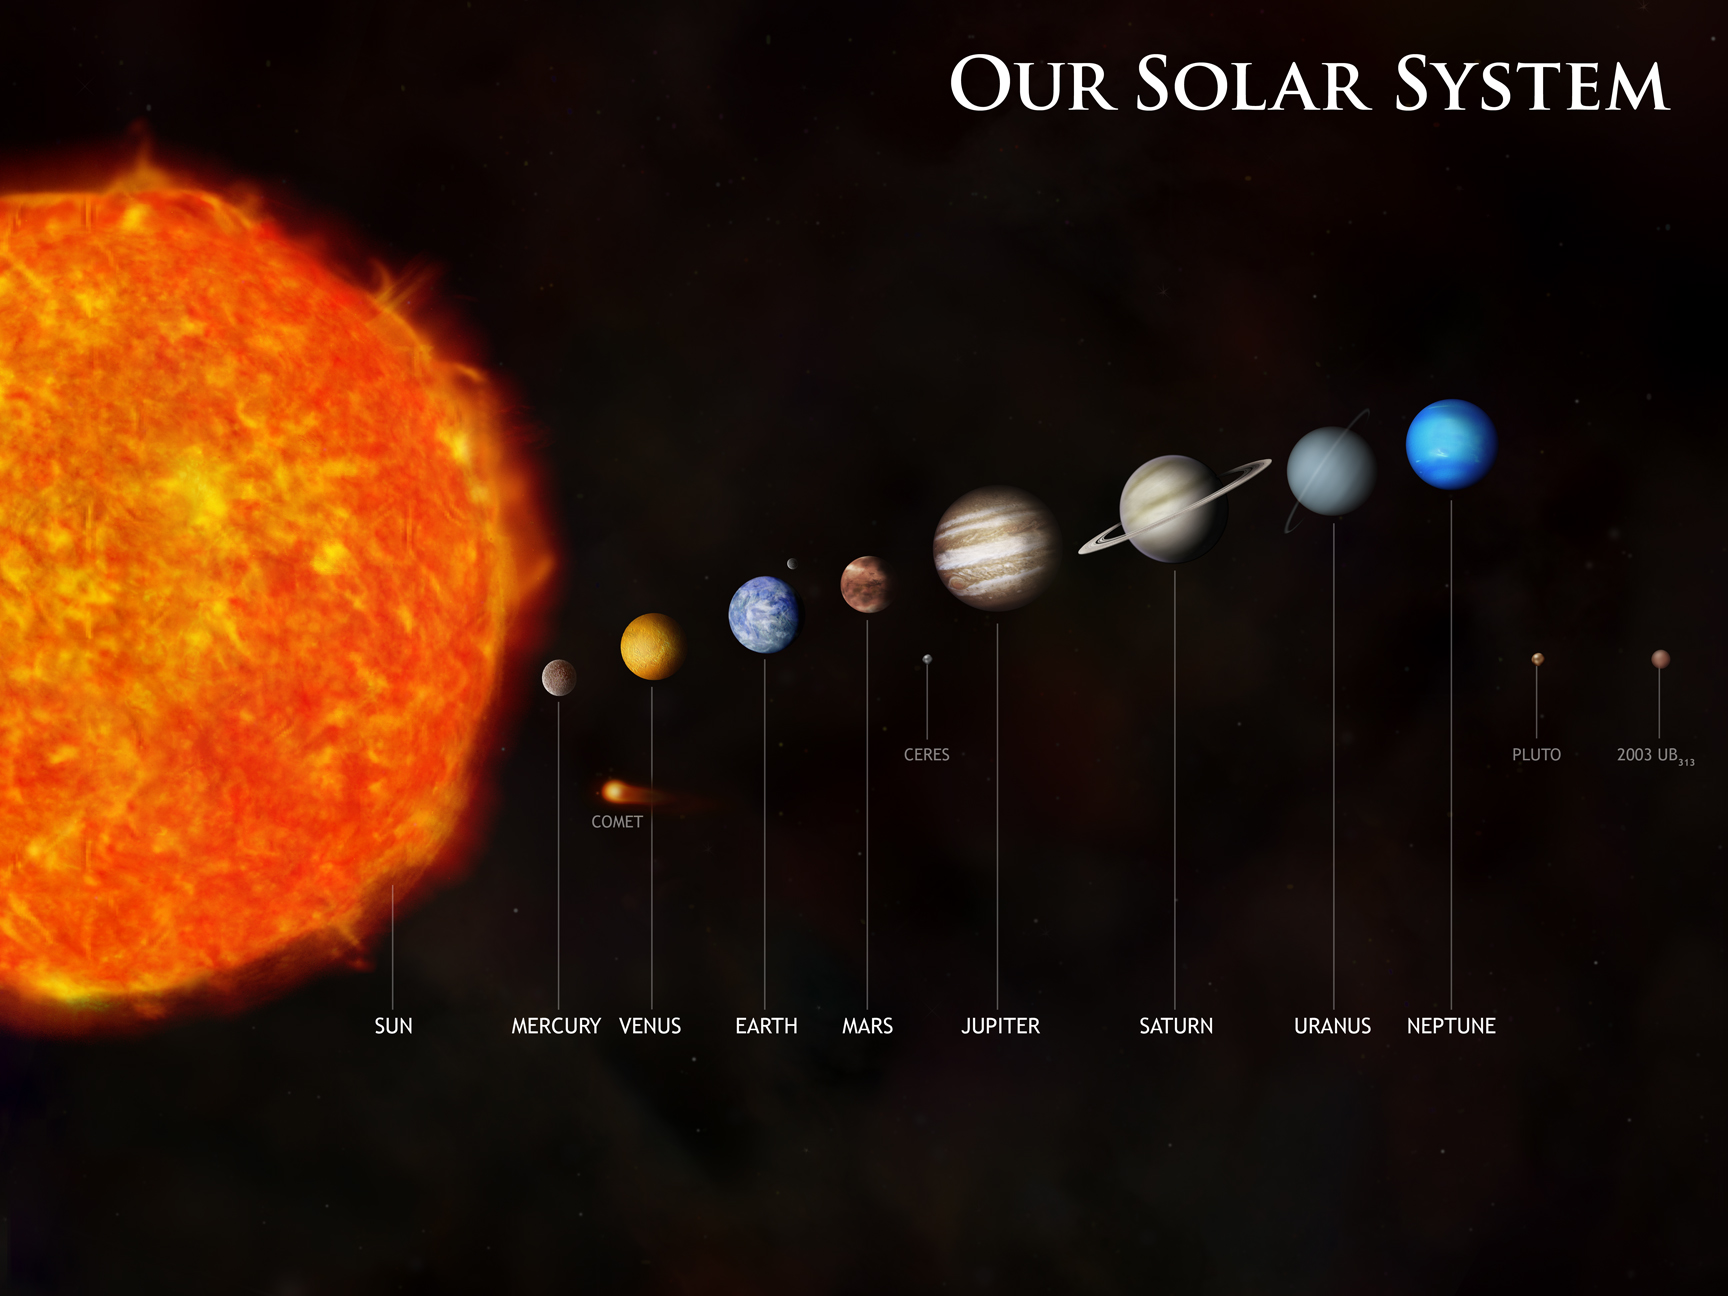 Chandra resources solar system illustrations solarsystemill ccuart